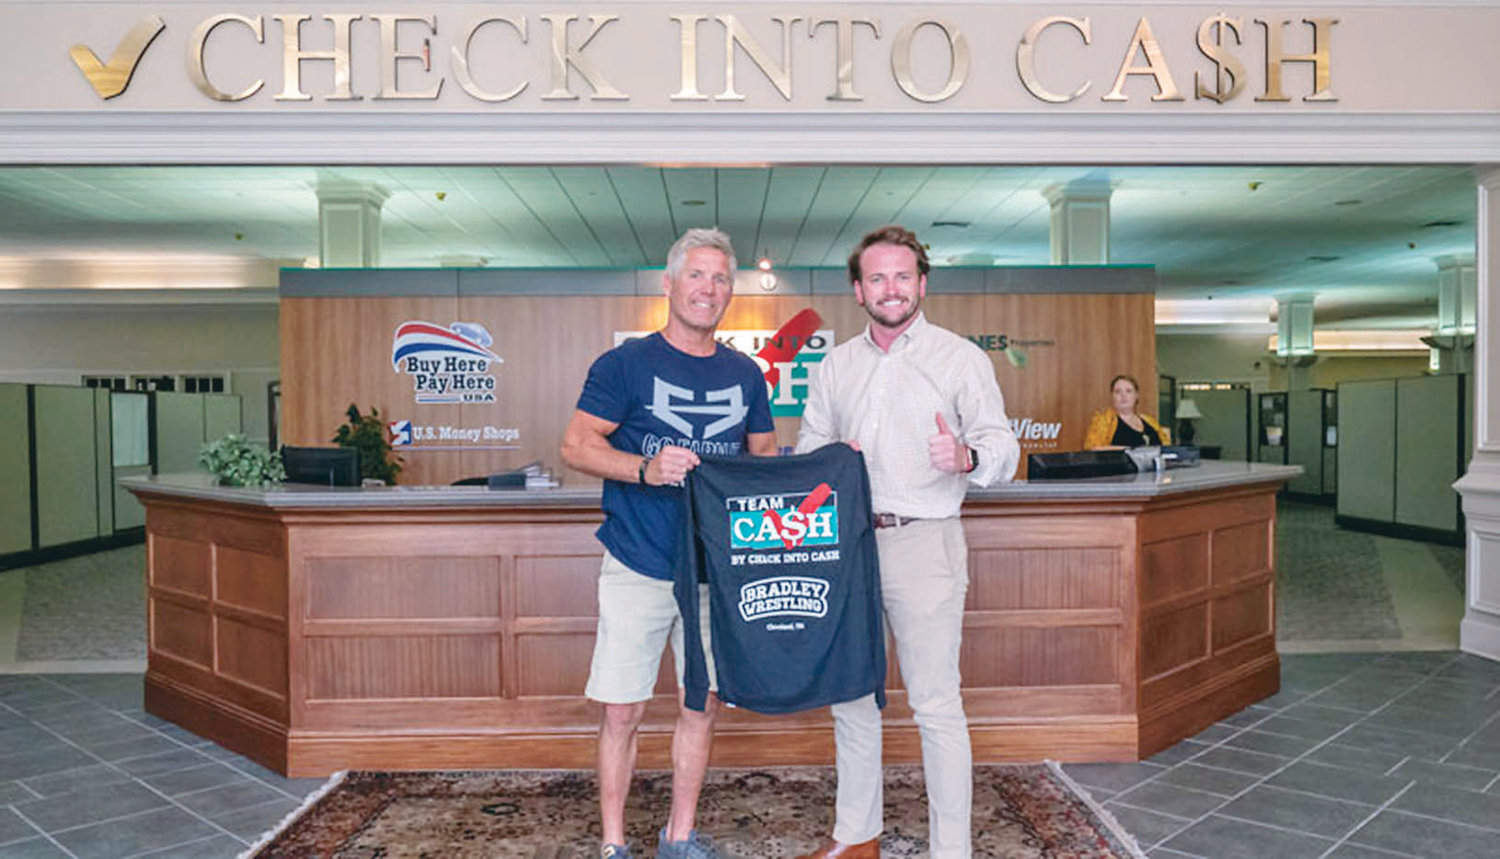 BRADLEY PRIDE Youth Wrestling Coach Steve Logsdon, left, is presented with a Team Cash T-shirt and contribution from Check Into Cash and the Allan Jones Foundation. Pictured with Logsdon is J. Bailey Jones, Vice President at Check Into Cash.